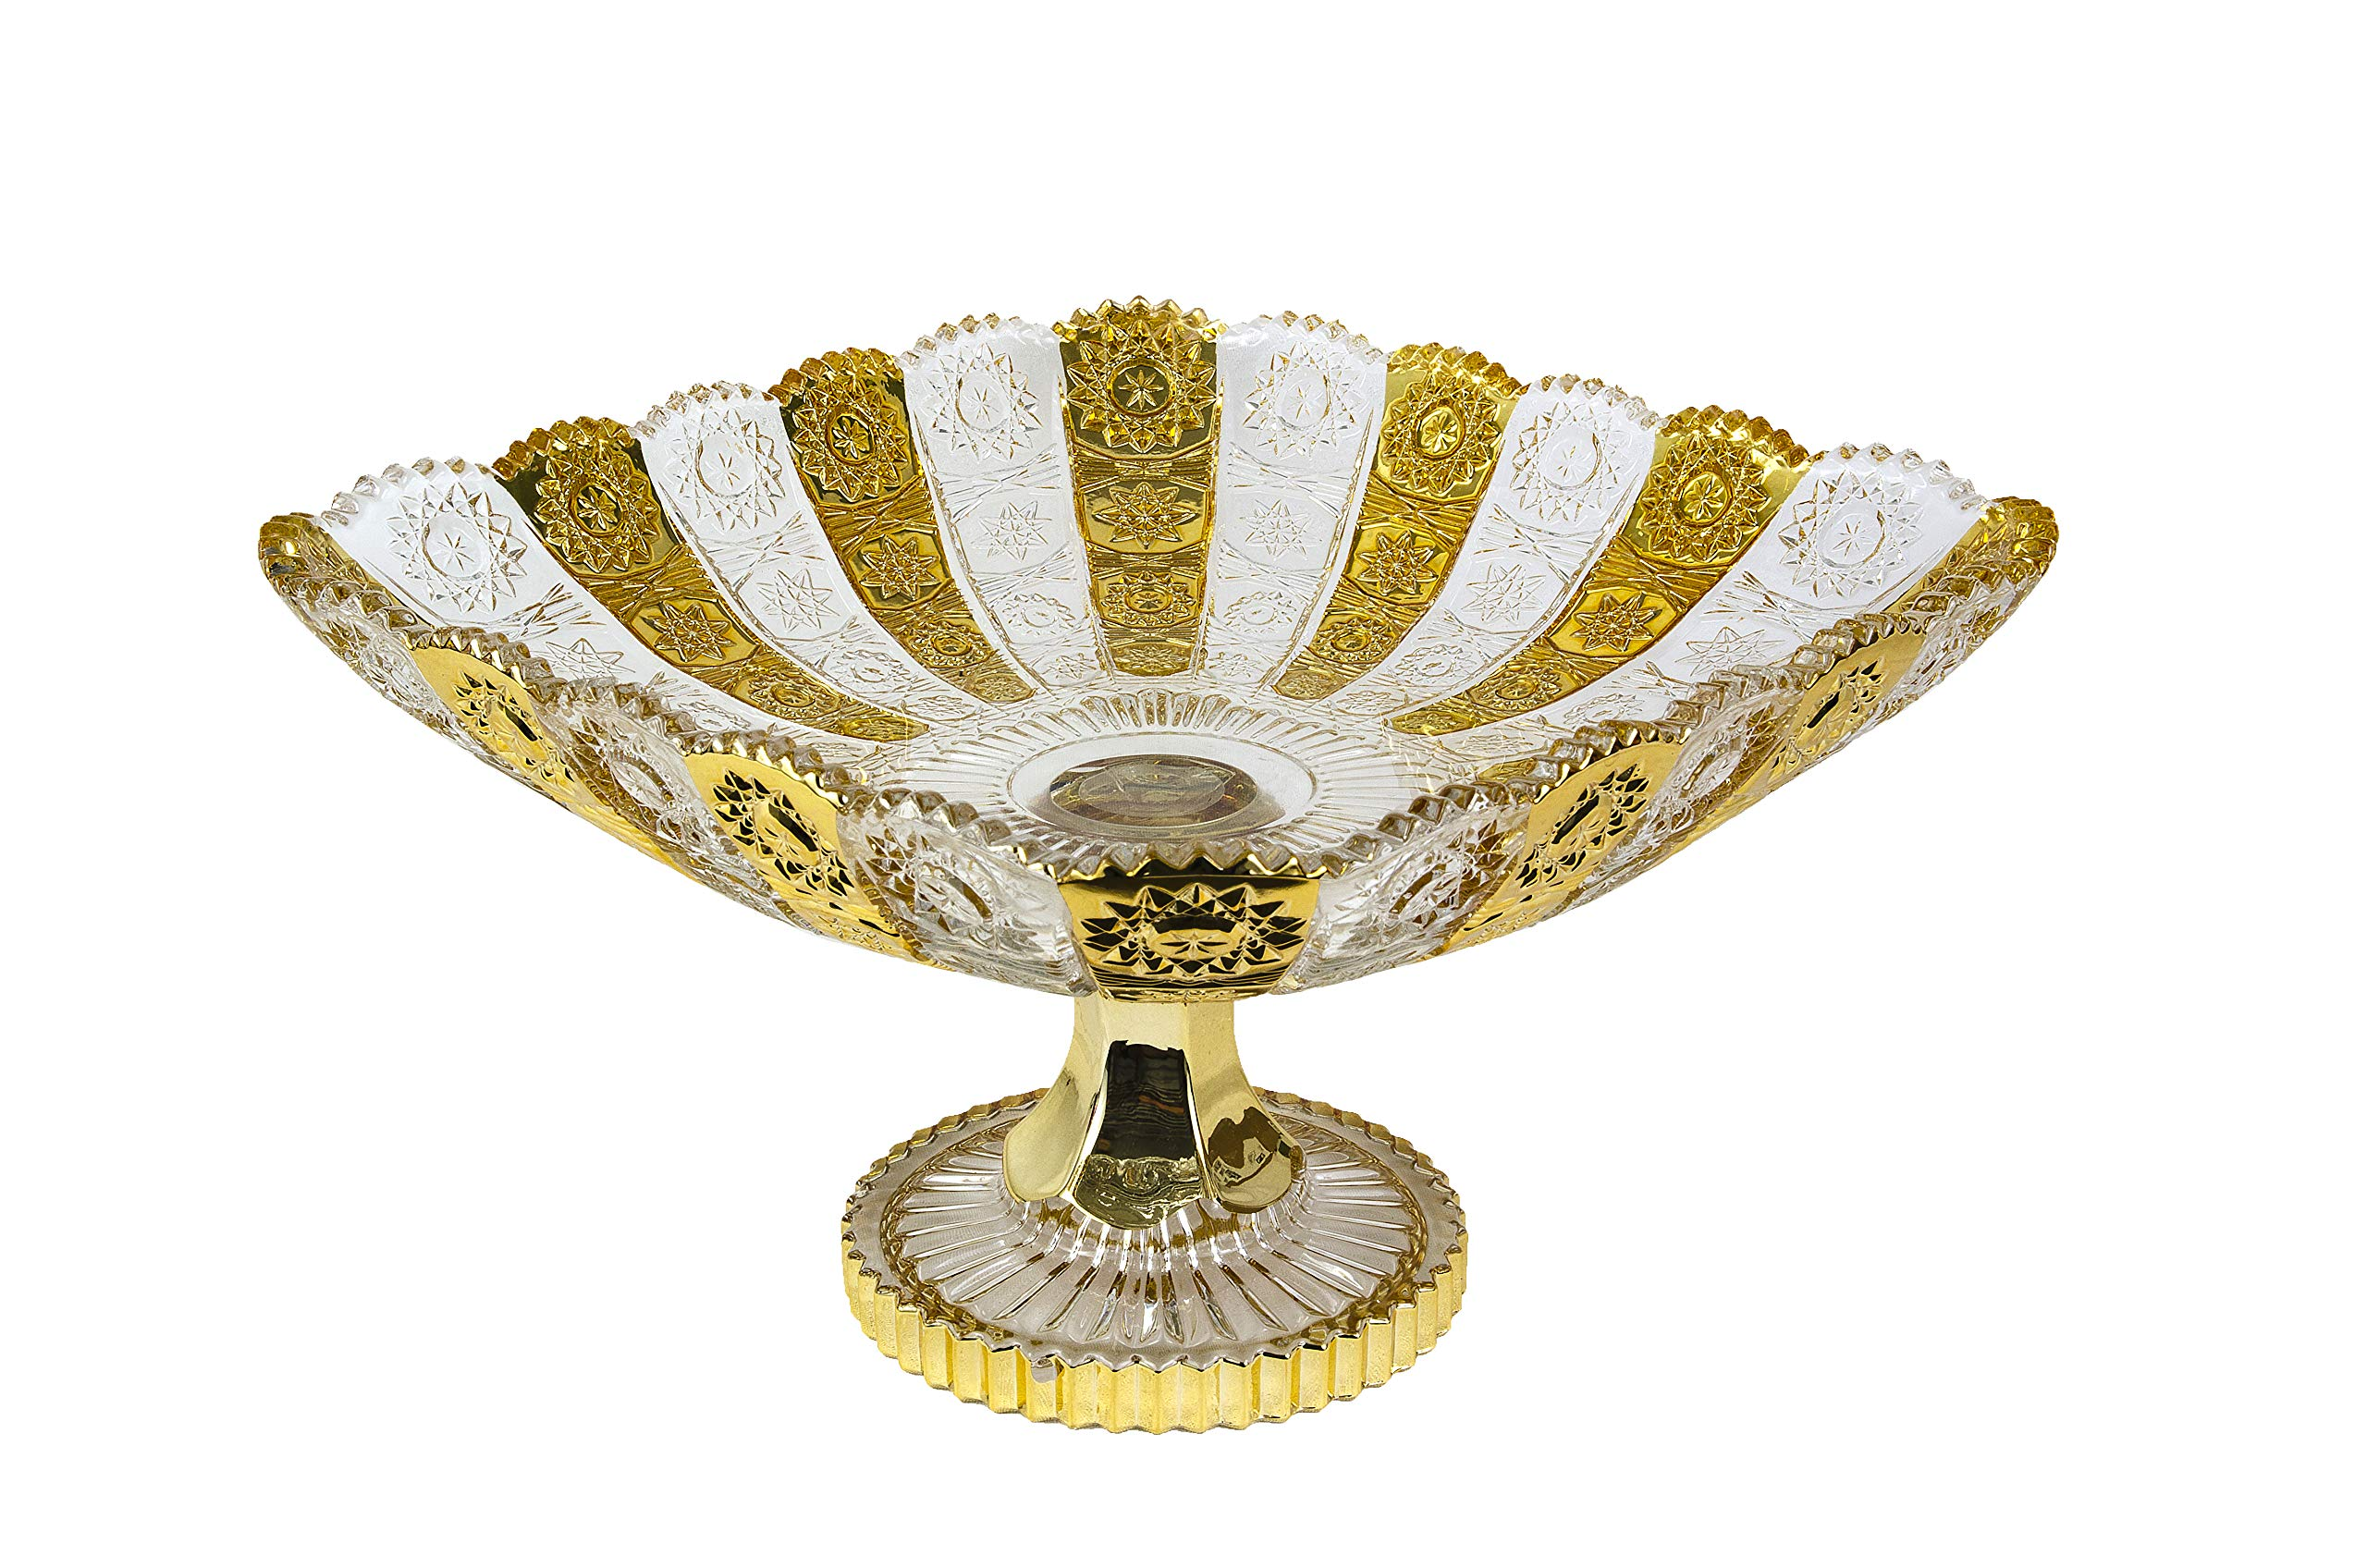 Pars Collections New Elegant Crystal Glass Centerpiece Serving Footed Square Bowl for Home, Office, Décor, Serving Fruit or Desert (Gold)